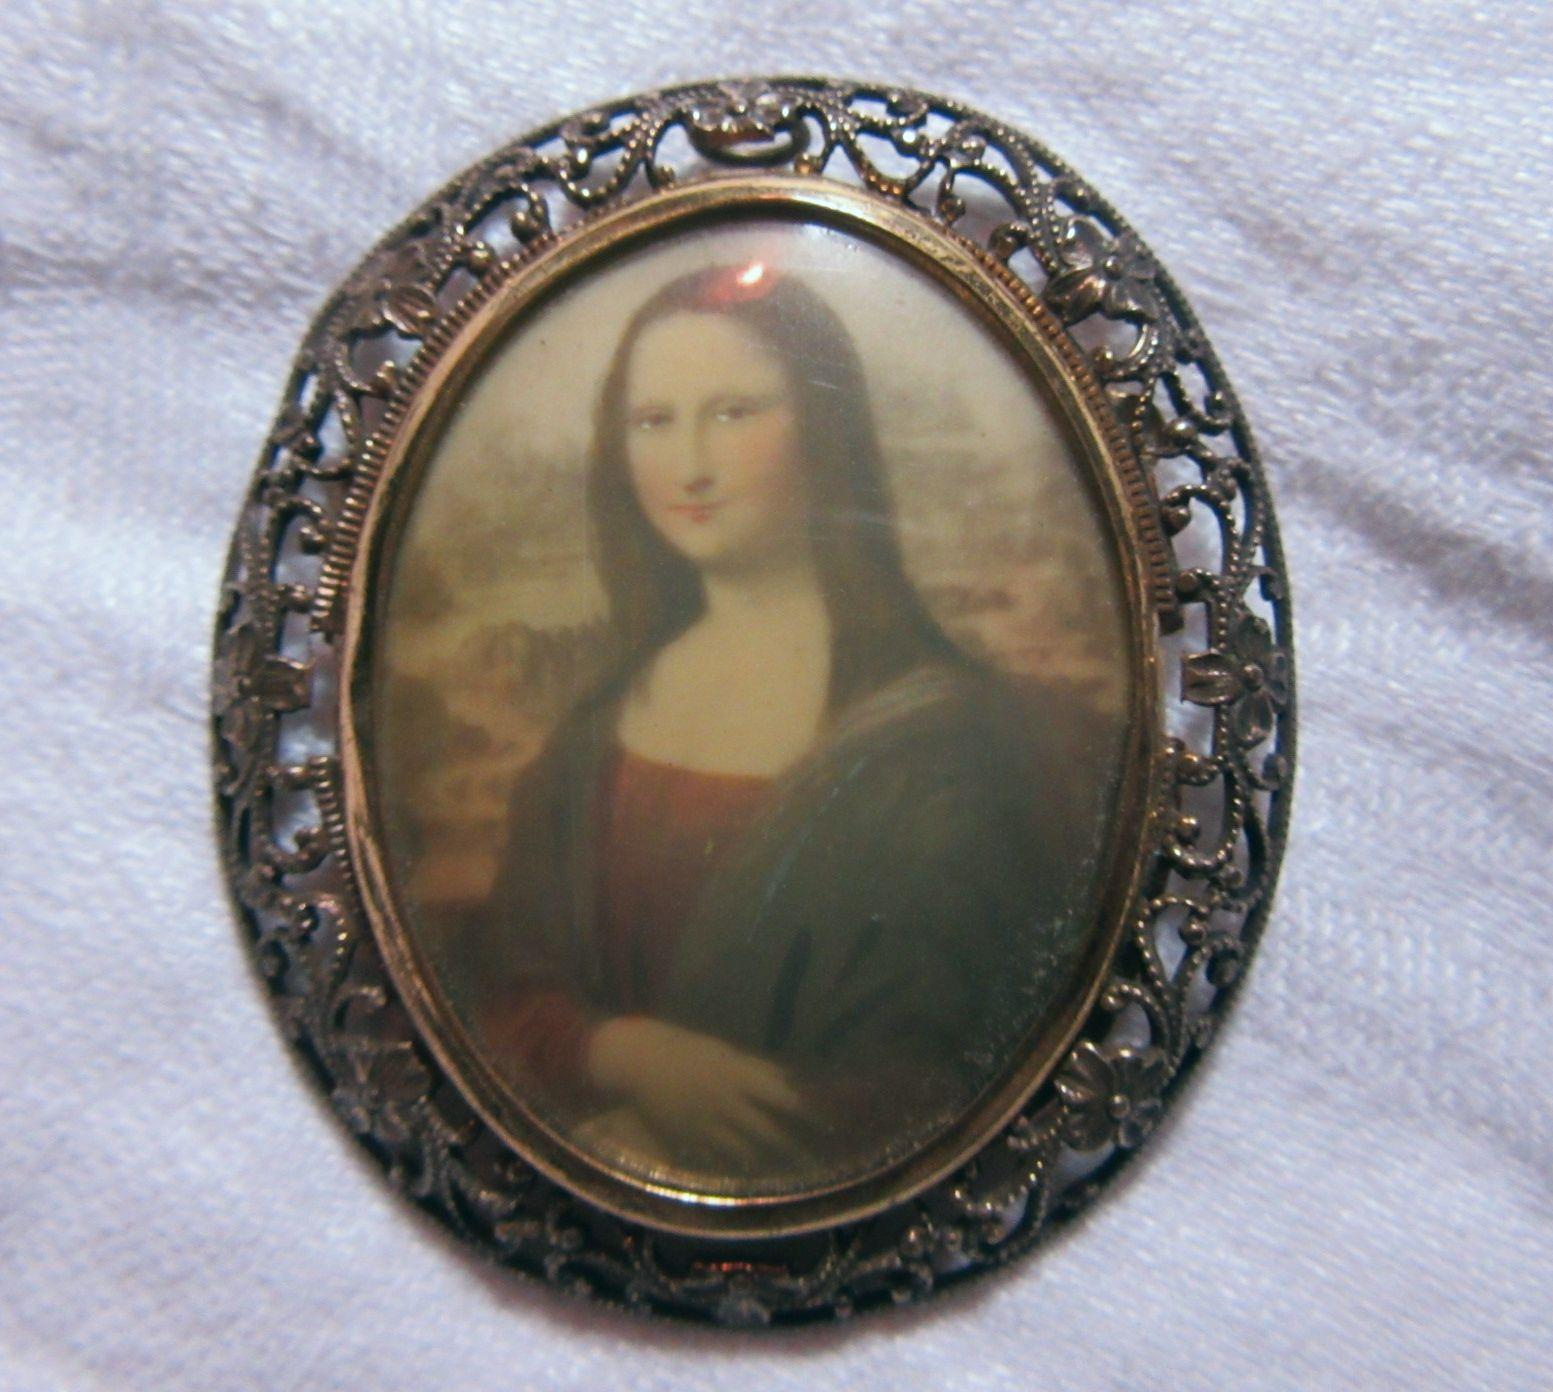 Mona Lisa Art Brooch